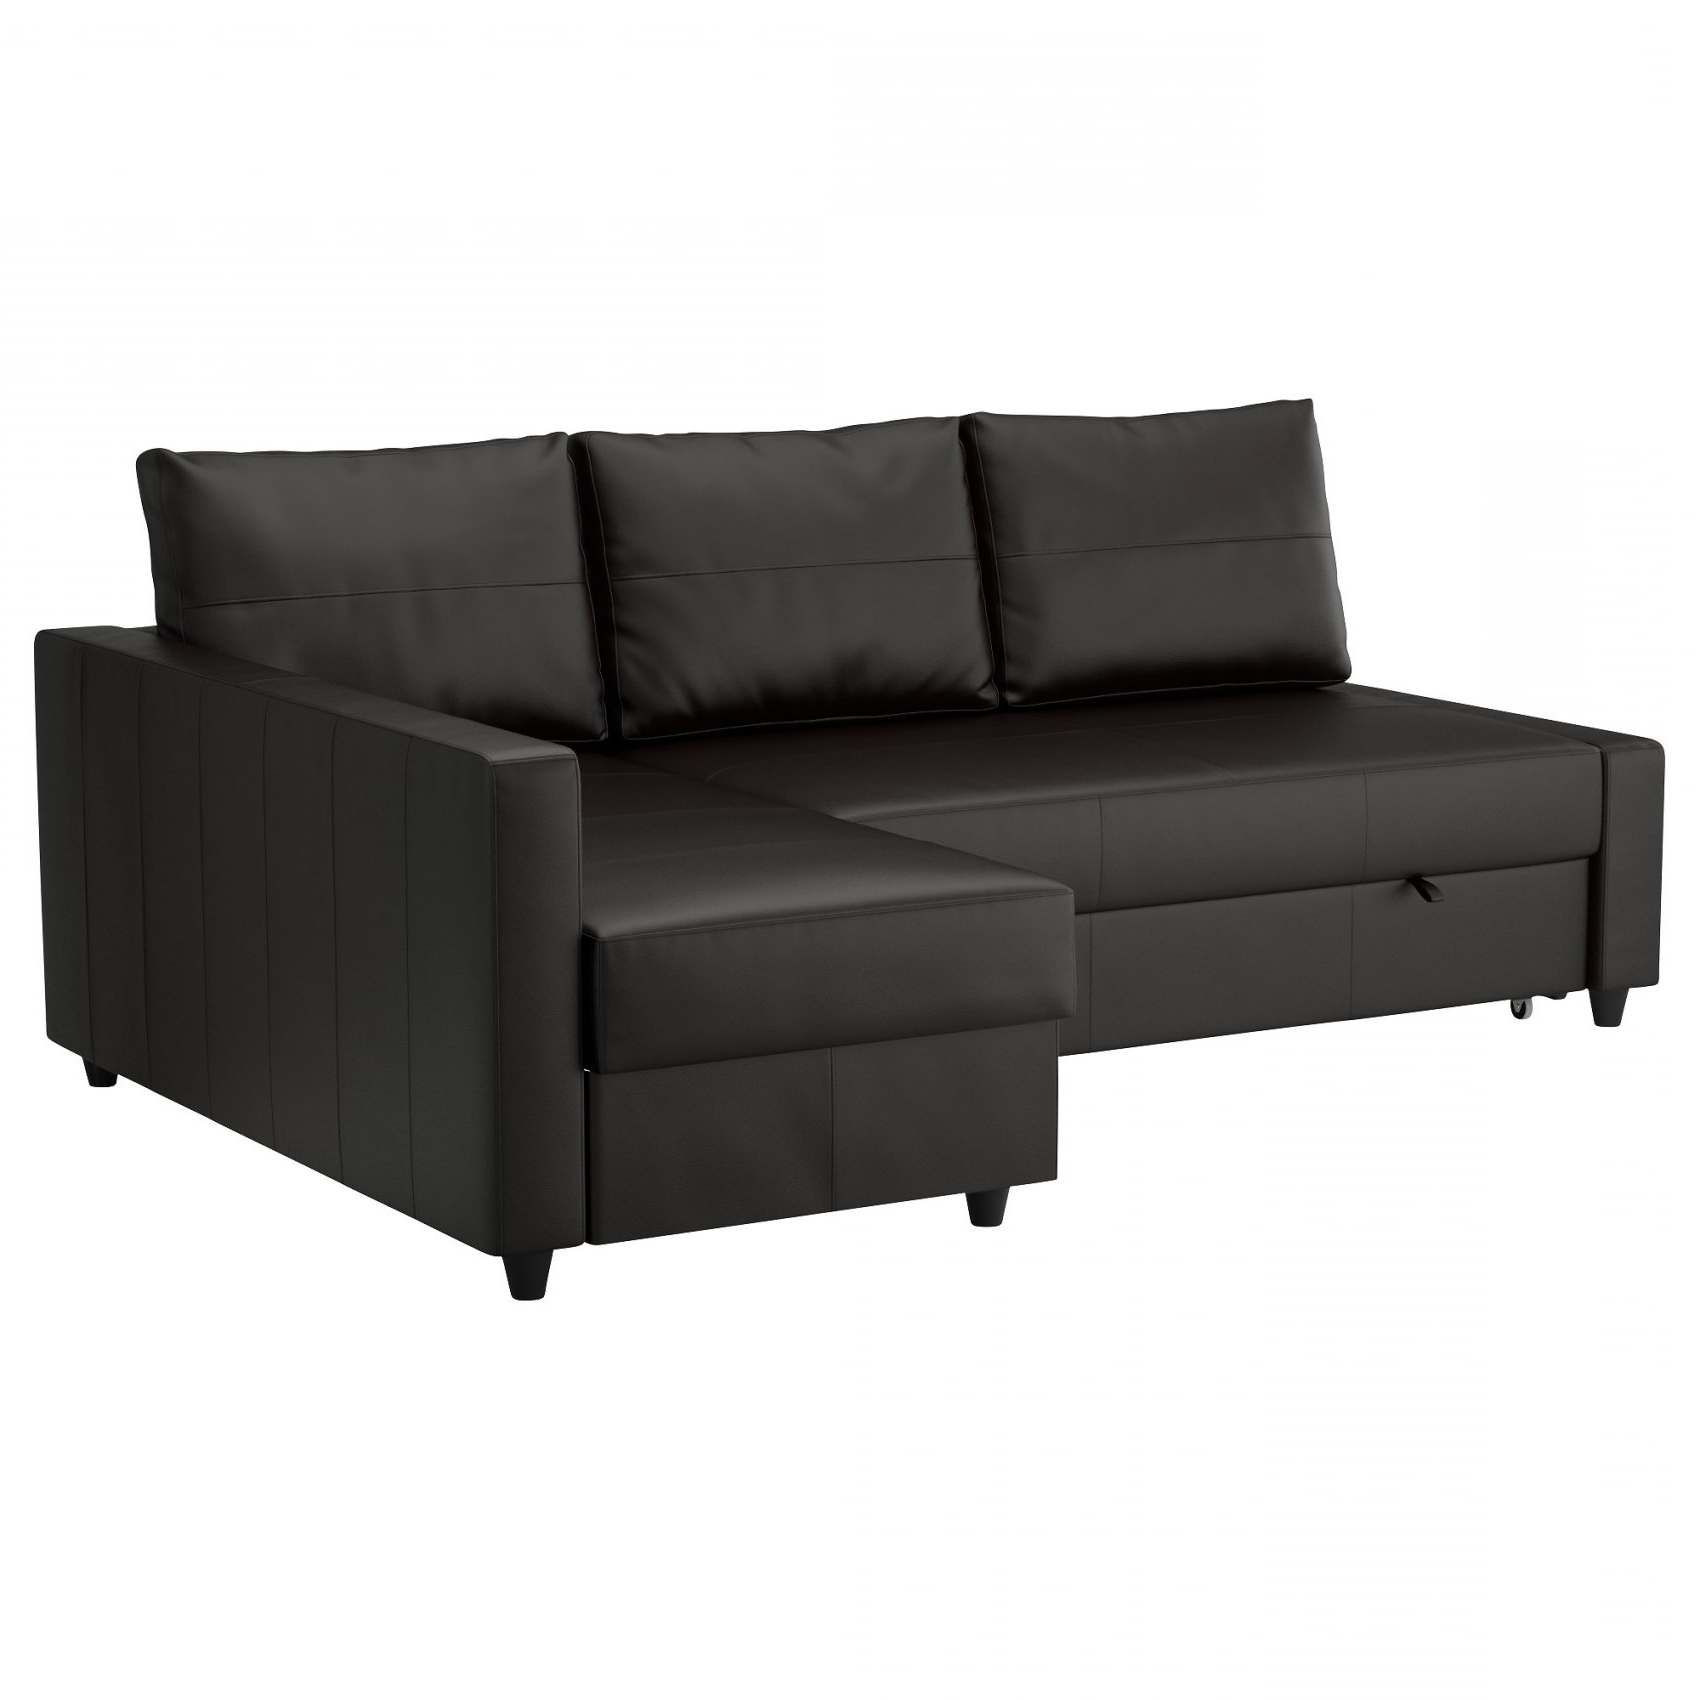 Popular Chaise Sofa Sleepers Regarding Chaise Lounge Sofa Sleeper (View 6 of 15)